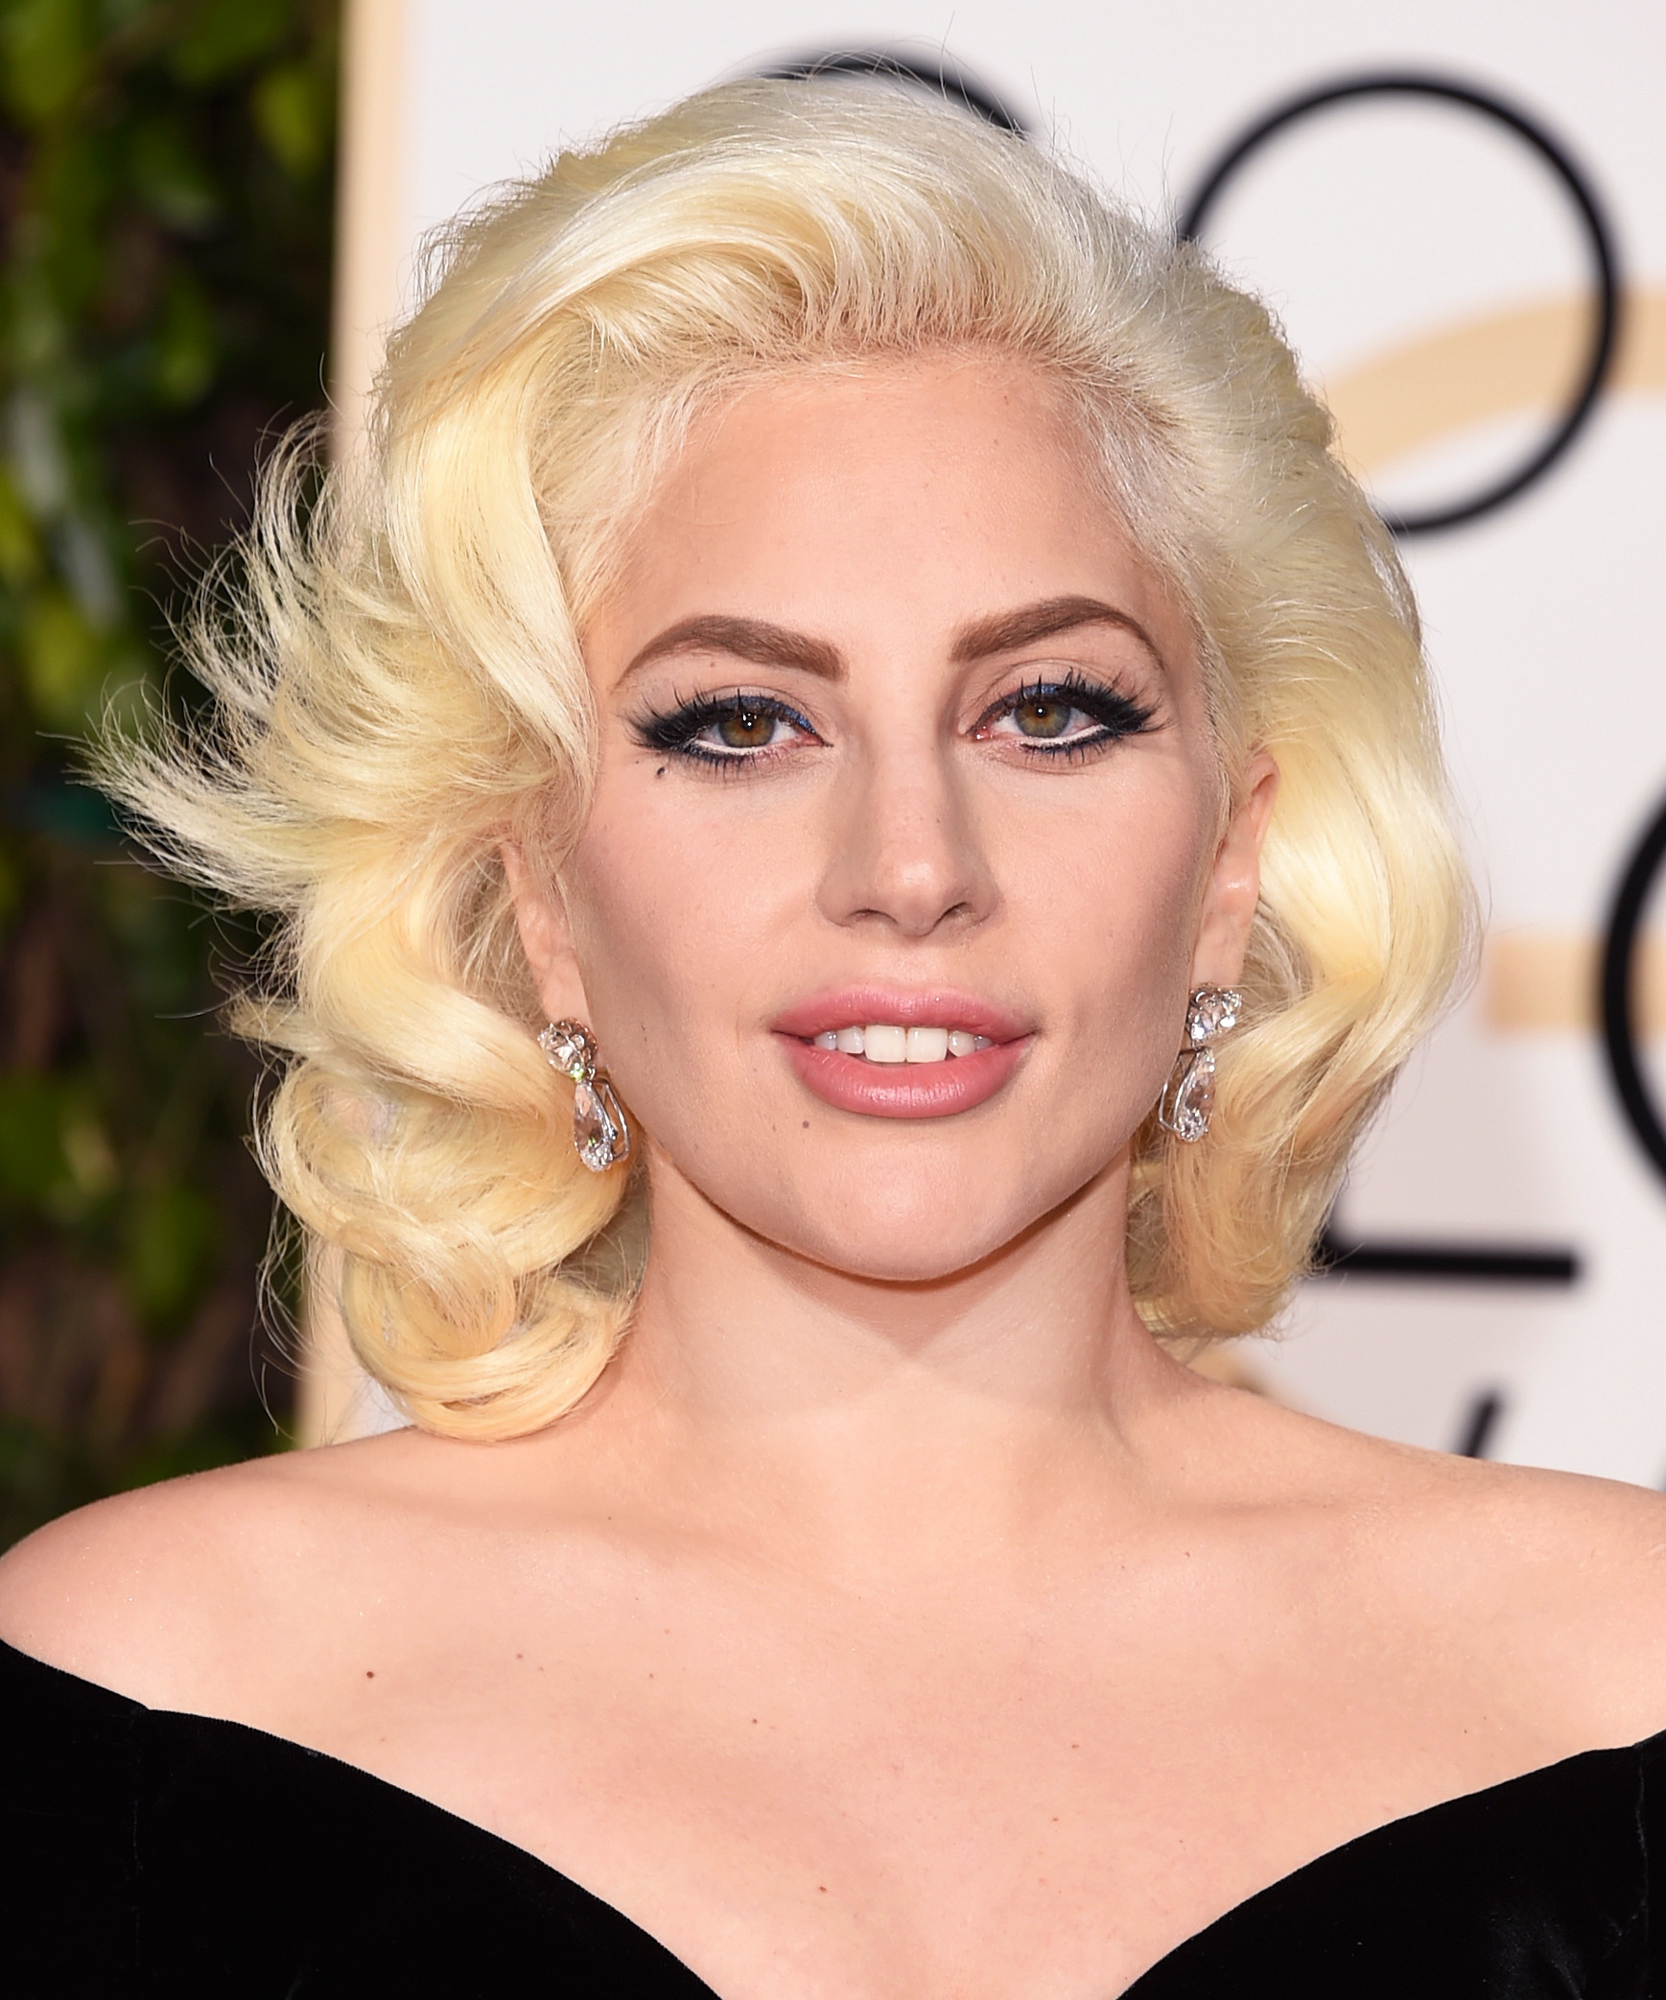 Lady Gaga Will Perform David Bowie Tribute at 2016 Grammys